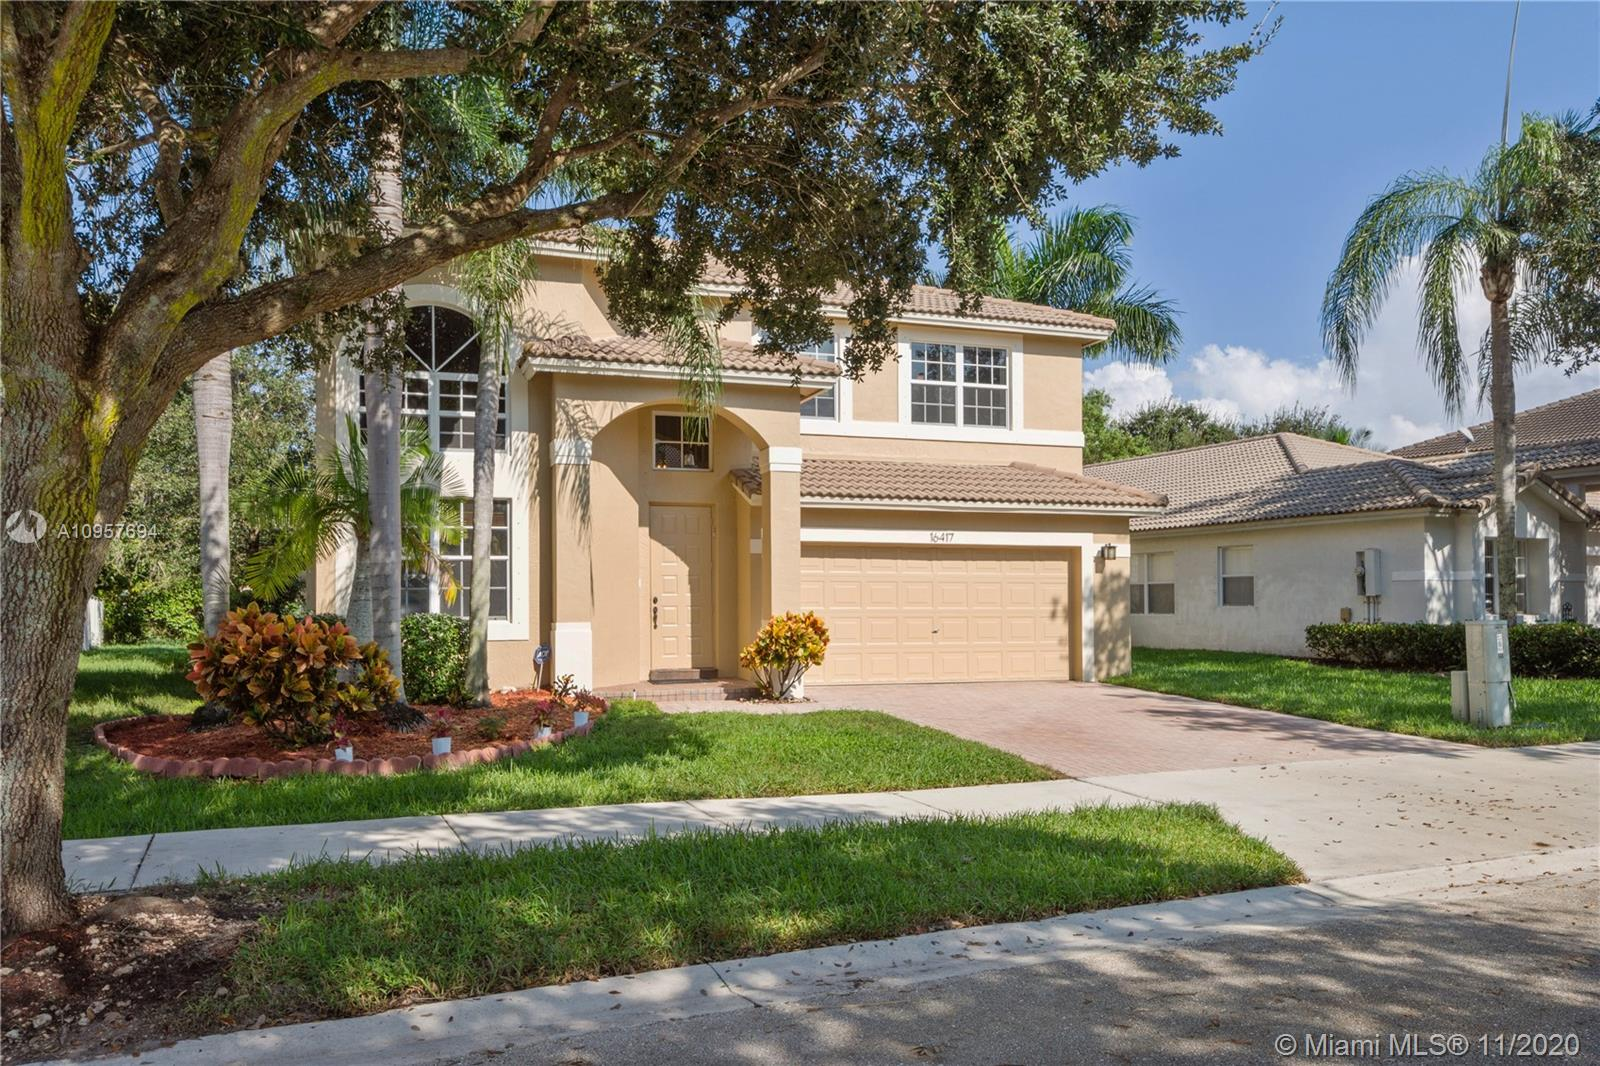 Just listed in the prestigious community of Emerald Estates. Built by Lennar with great parks and amenities and A+ school district. Peaceful 24hr guard-gated in the amazing City of Weston. This is the Jade Model with an open floor plan featuring 2812 Sqft A/C with 4 bd, 3 bth & large loft, 2 car garages. The 1st-floor bedroom is perfect for guests/office and loft is versatile. New impact windows on 2nd floor and hurricane panels for 1st floor. Recently renovated master bathroom, painted inside & outside, including garage floor, renovated white kitchen, newer appliances, & granite countertops.Laminate flooring on stairs and second floor. Newer water heater. Private lot and stunning garden views. HOA includes lawn maintenance, fertilizing, tree trimming, weeding, sprinklers, cable& much more